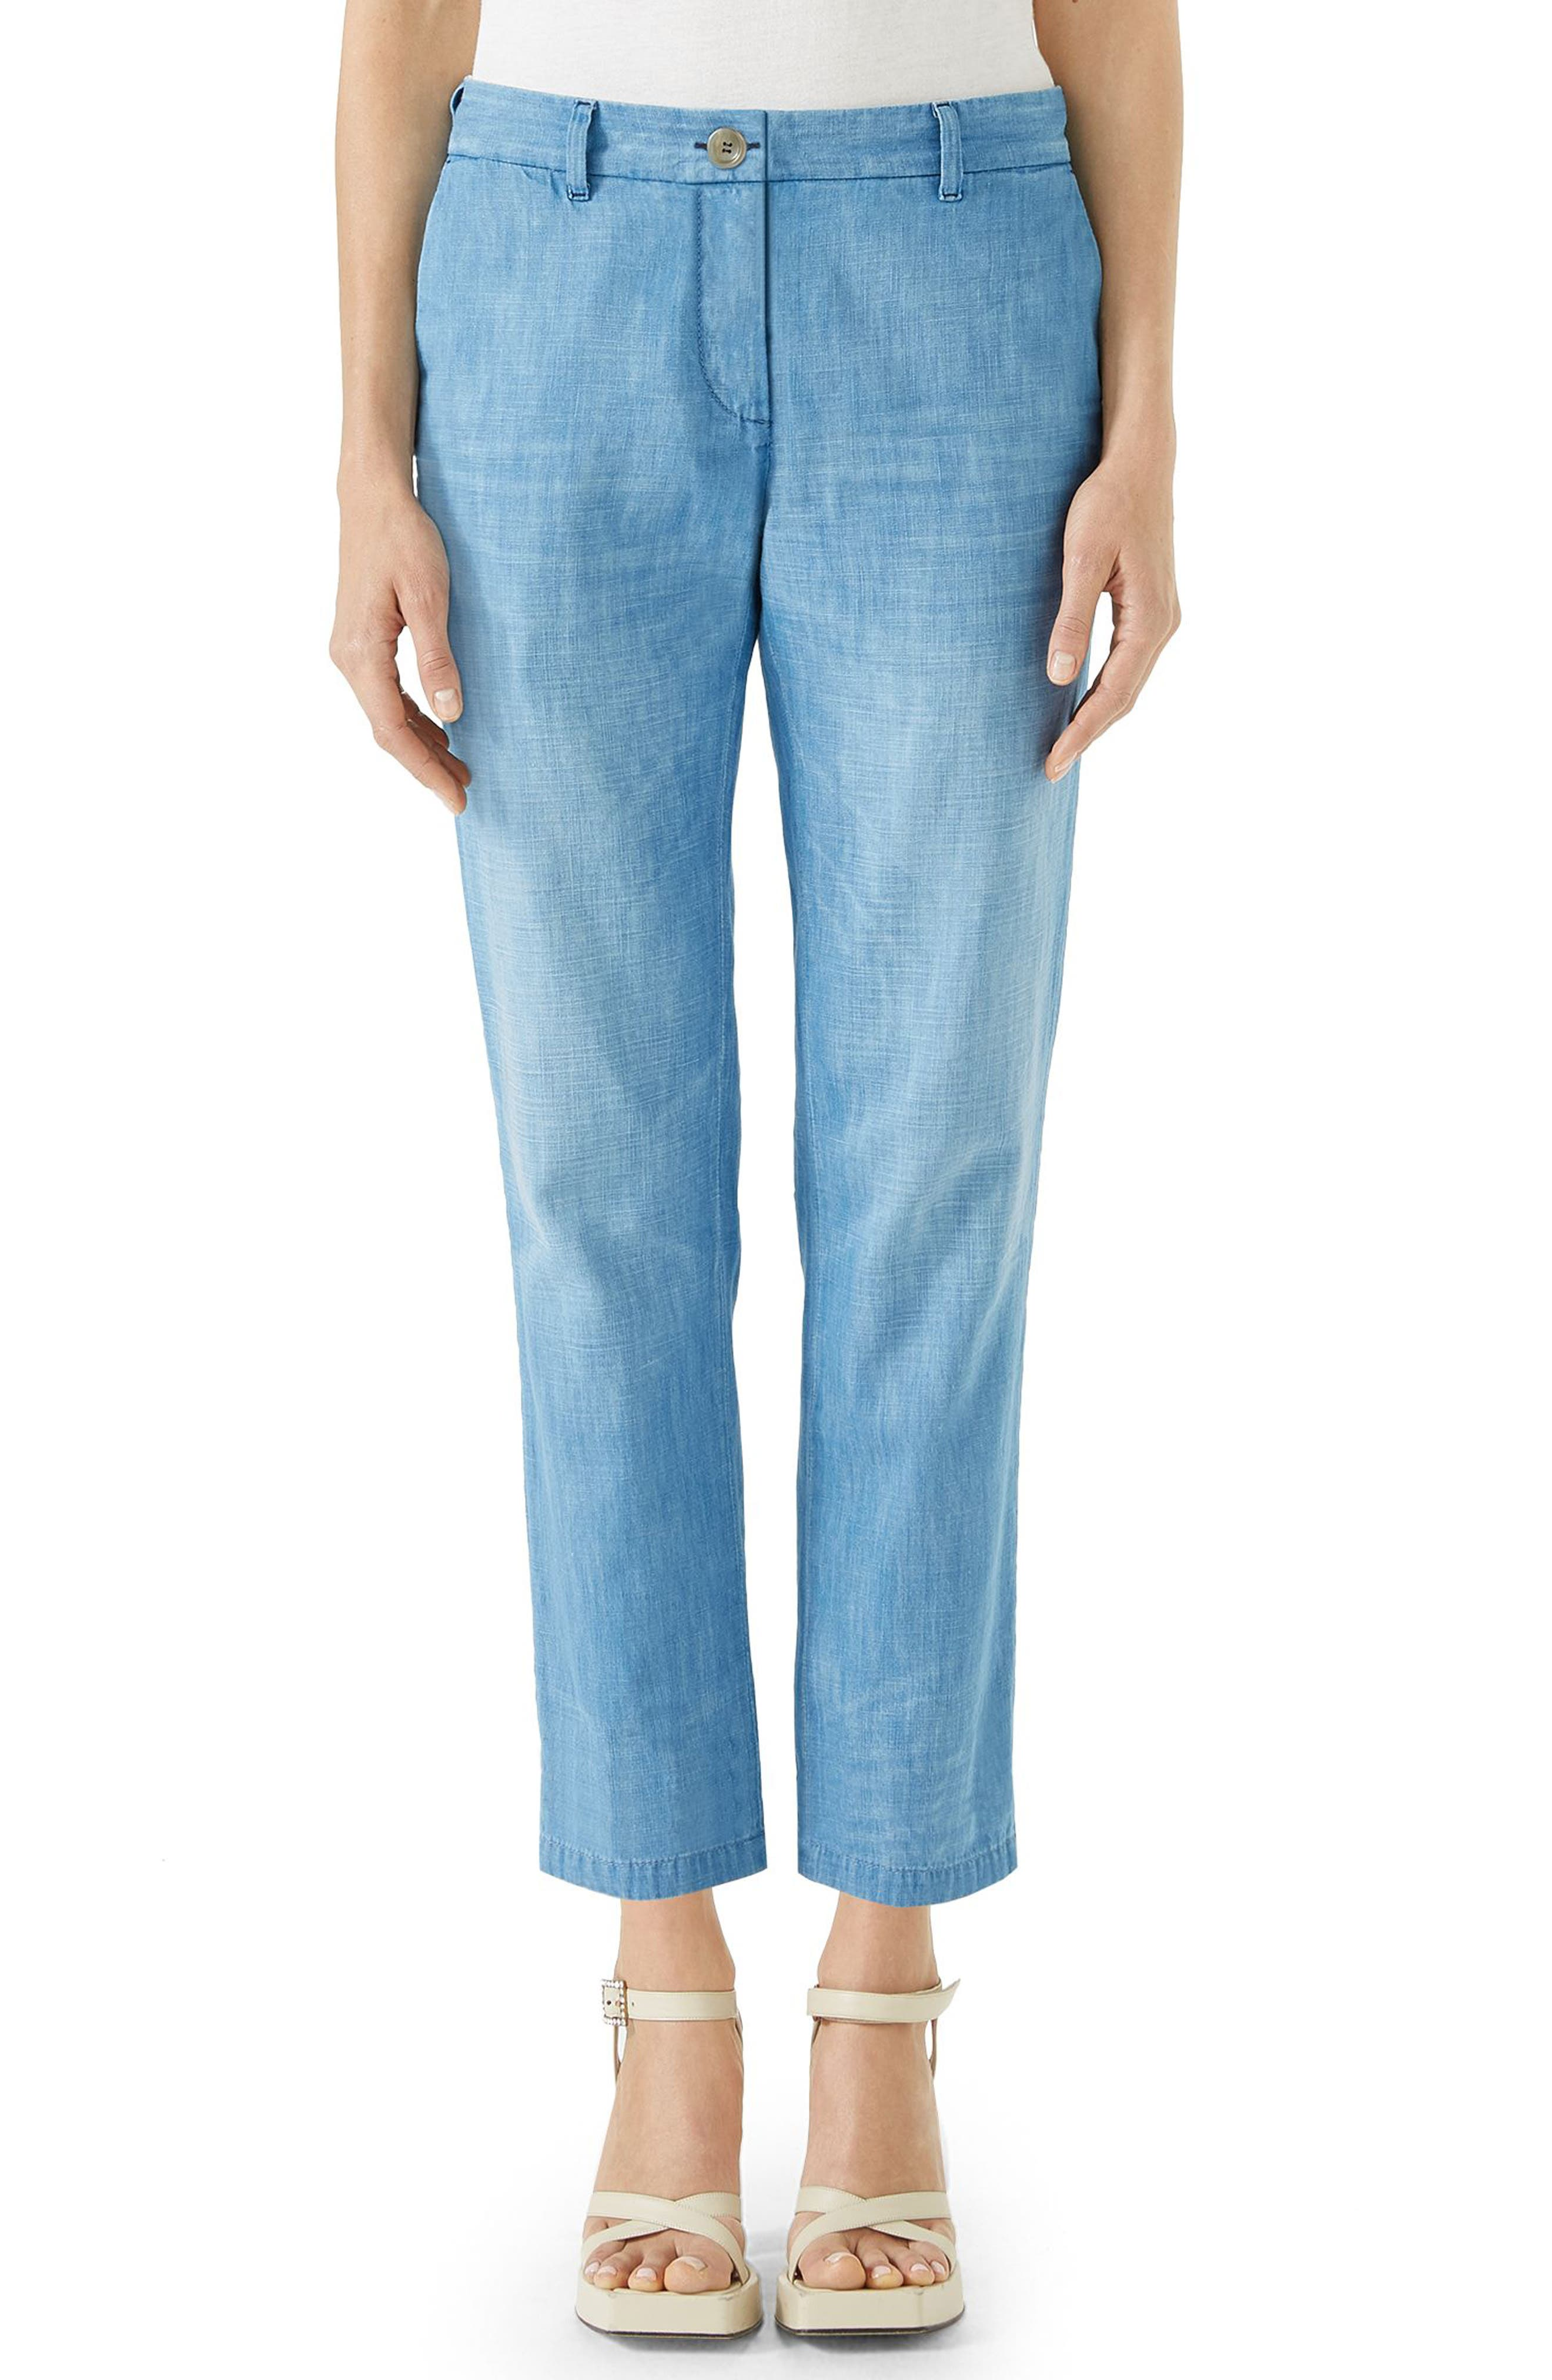 Denim Chino Pants,                             Main thumbnail 1, color,                             Light Blue/ Red